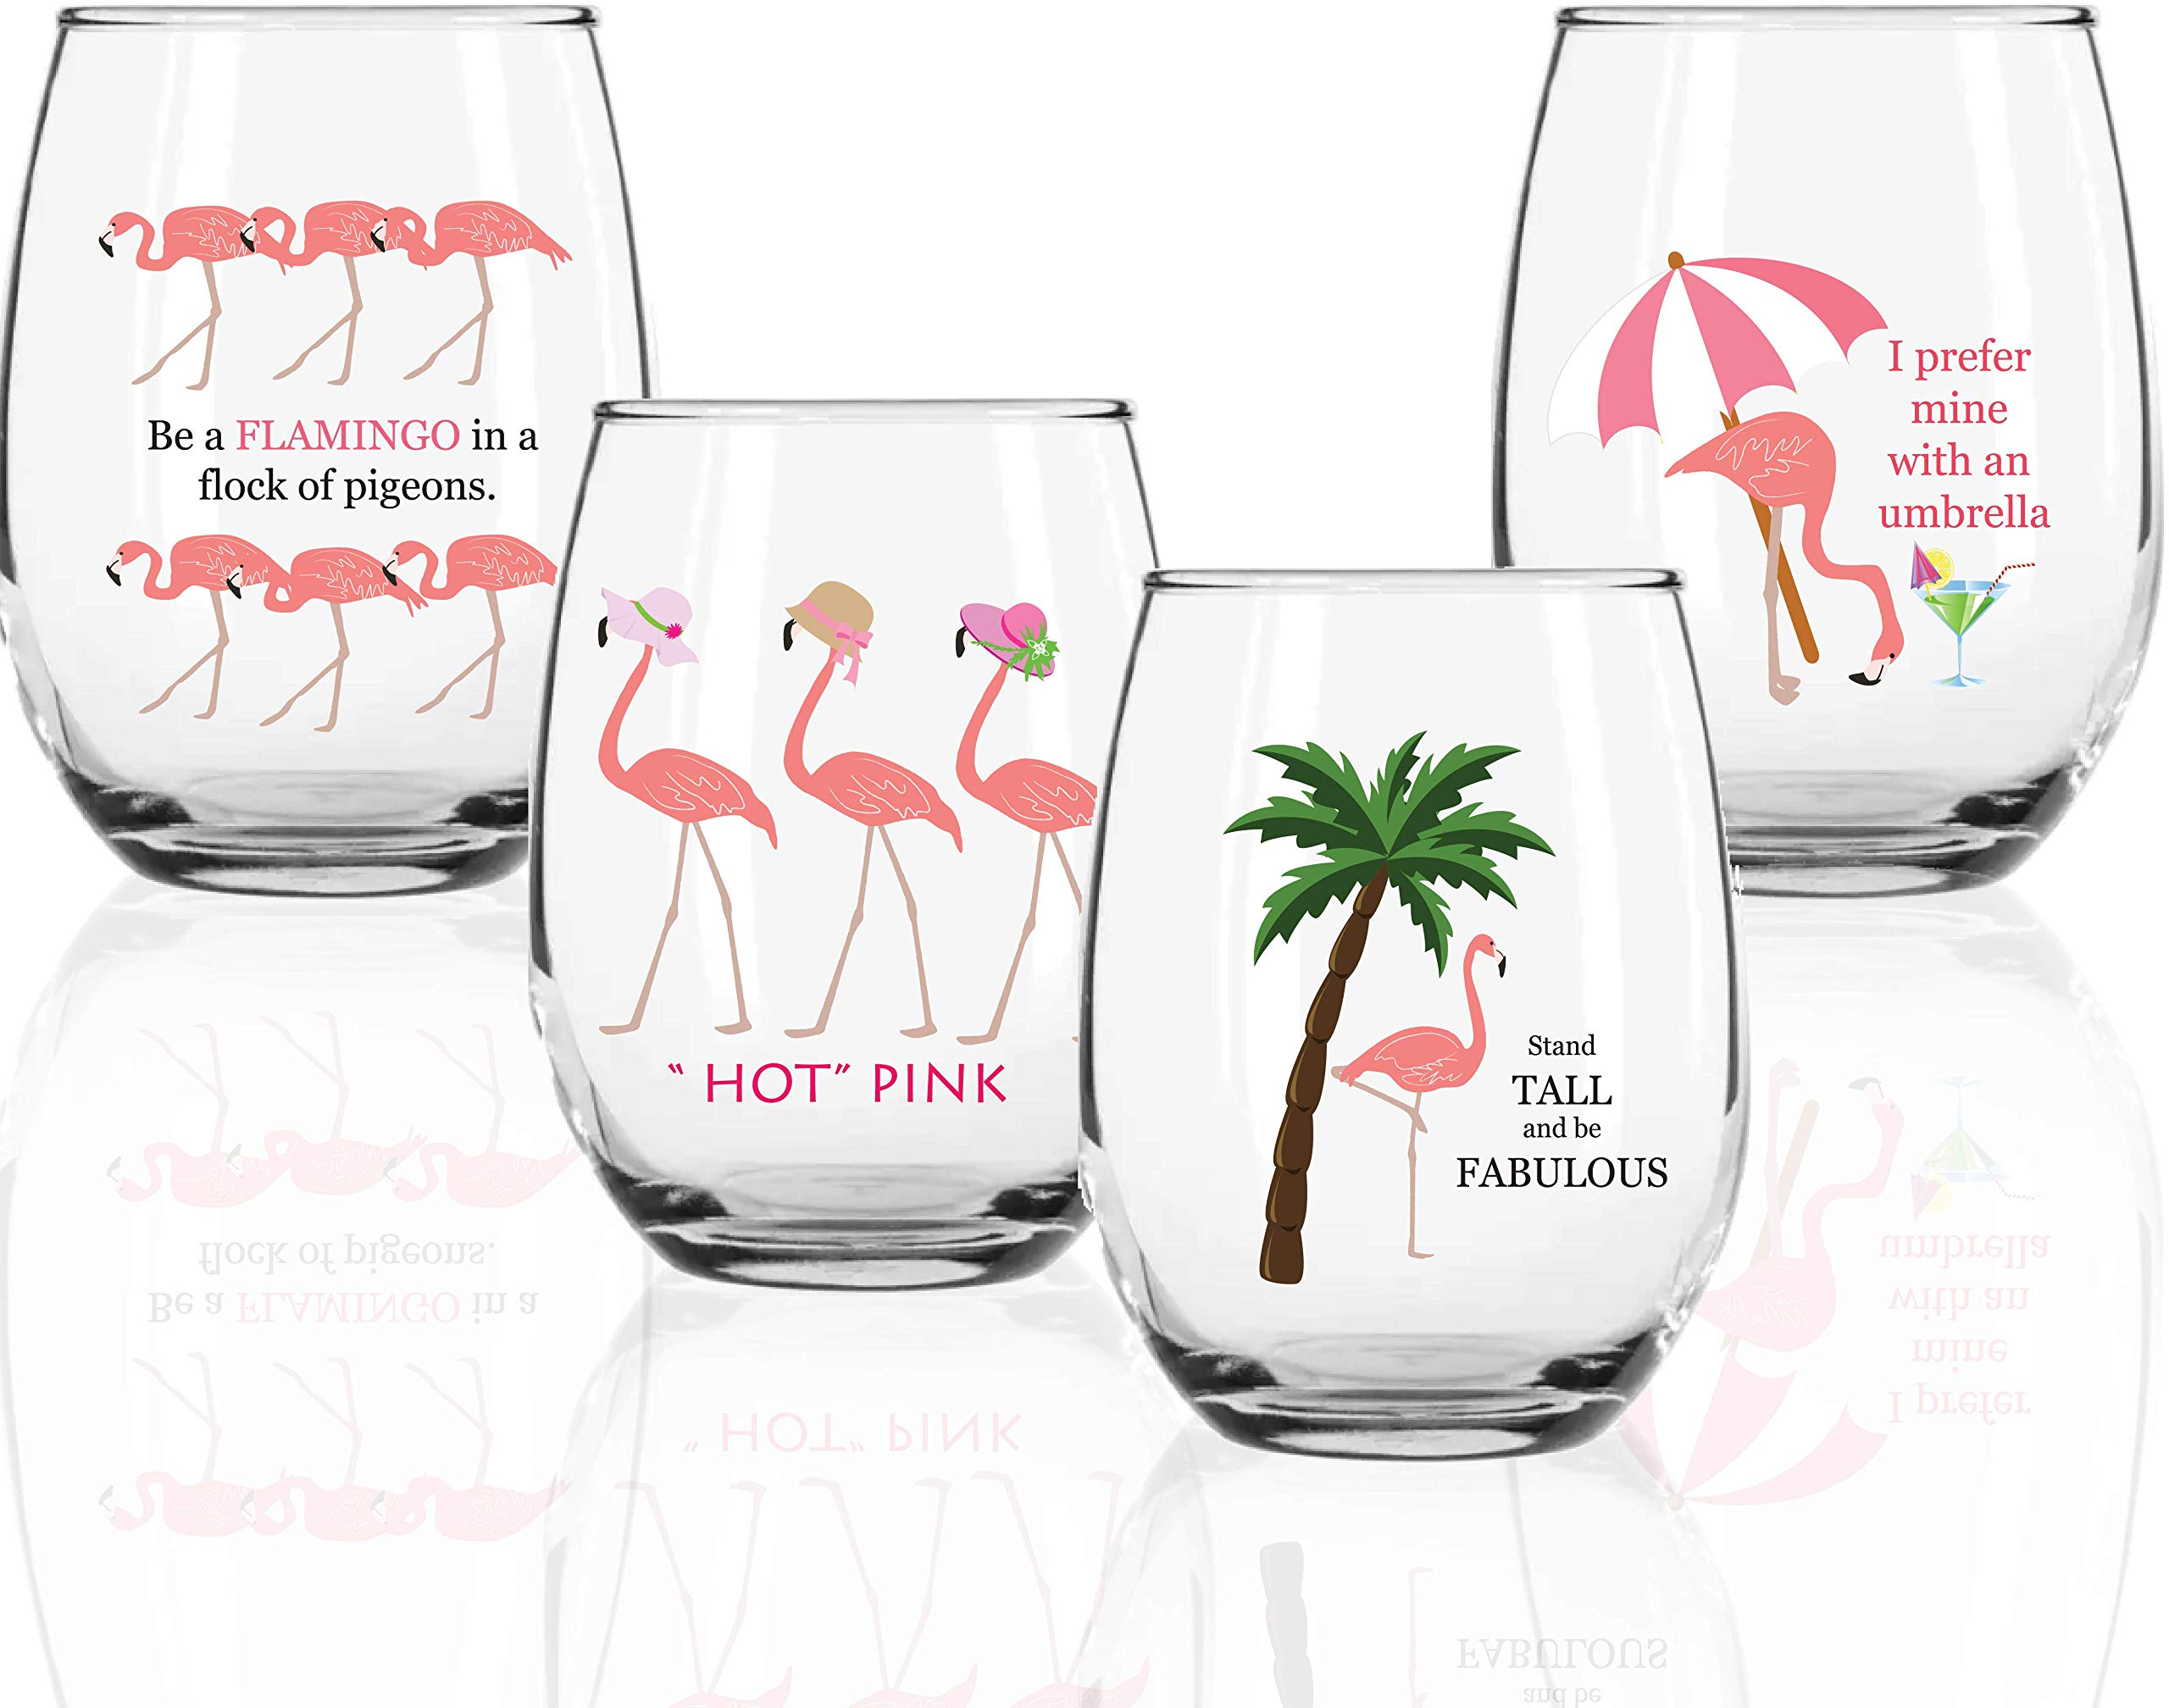 Circleware Flamingo Stemless Wine Glasses with Decal, Set of 4, Home & Kitchen Funny Party Entertainment Dining Glassware for Water, Beer, Juice, Ice Tea, Whiskey Bar Beverage Cup Gifts, 18.5 oz, by Circleware (Image #1)